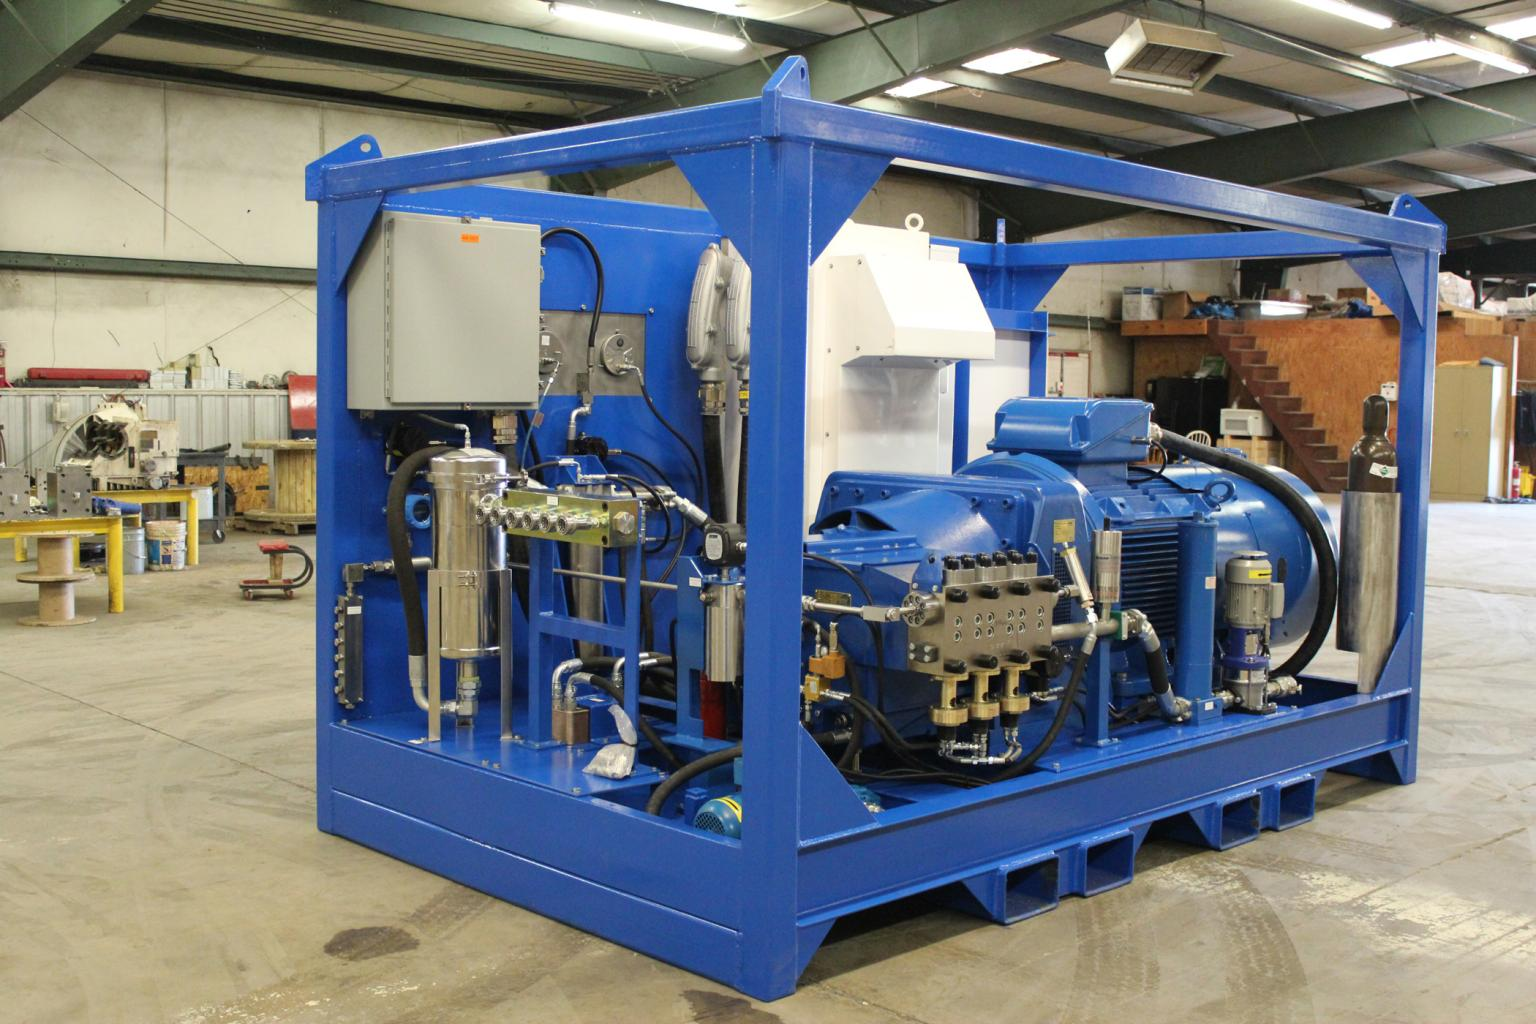 RMI designed the steel frame of the test rig around its Trimax S250 high pressure pump